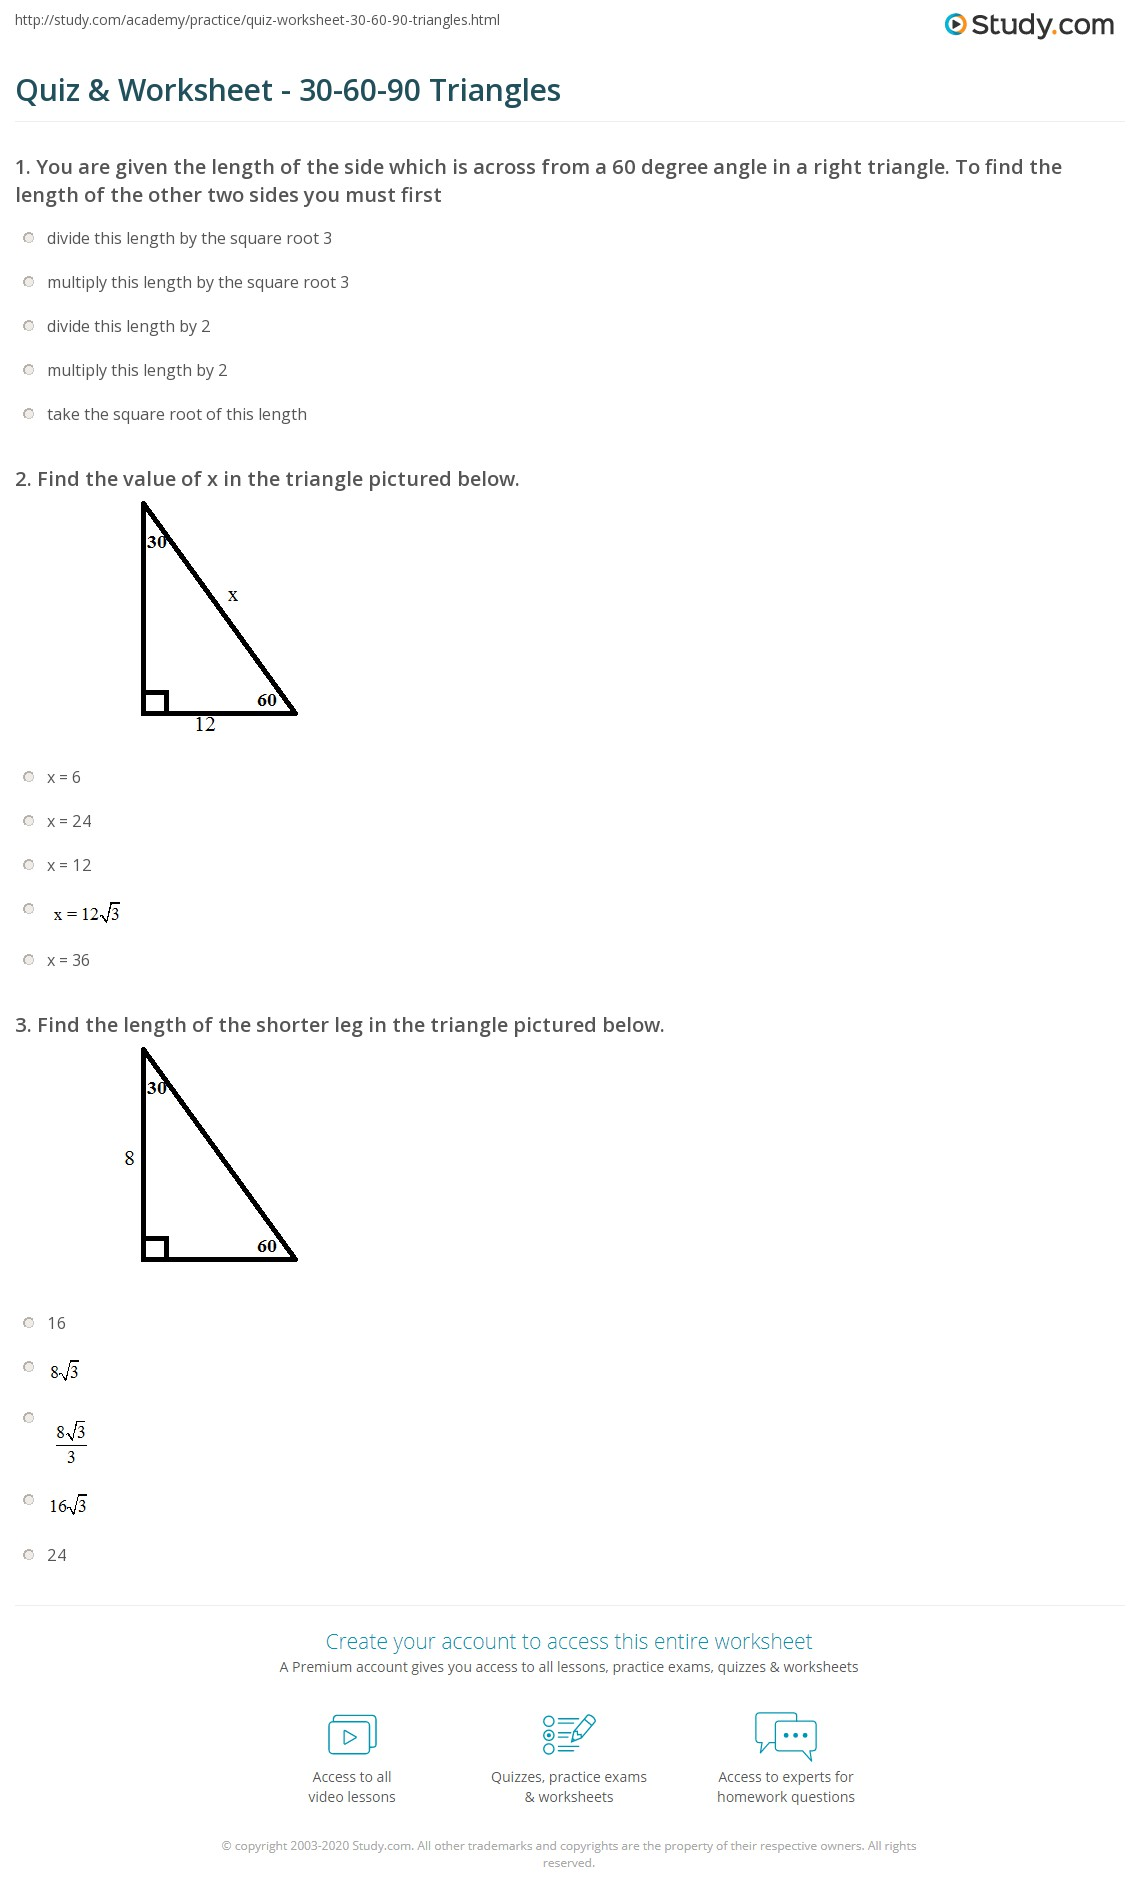 Quiz Worksheet 306090 Triangles – Solving Right Triangles Worksheet